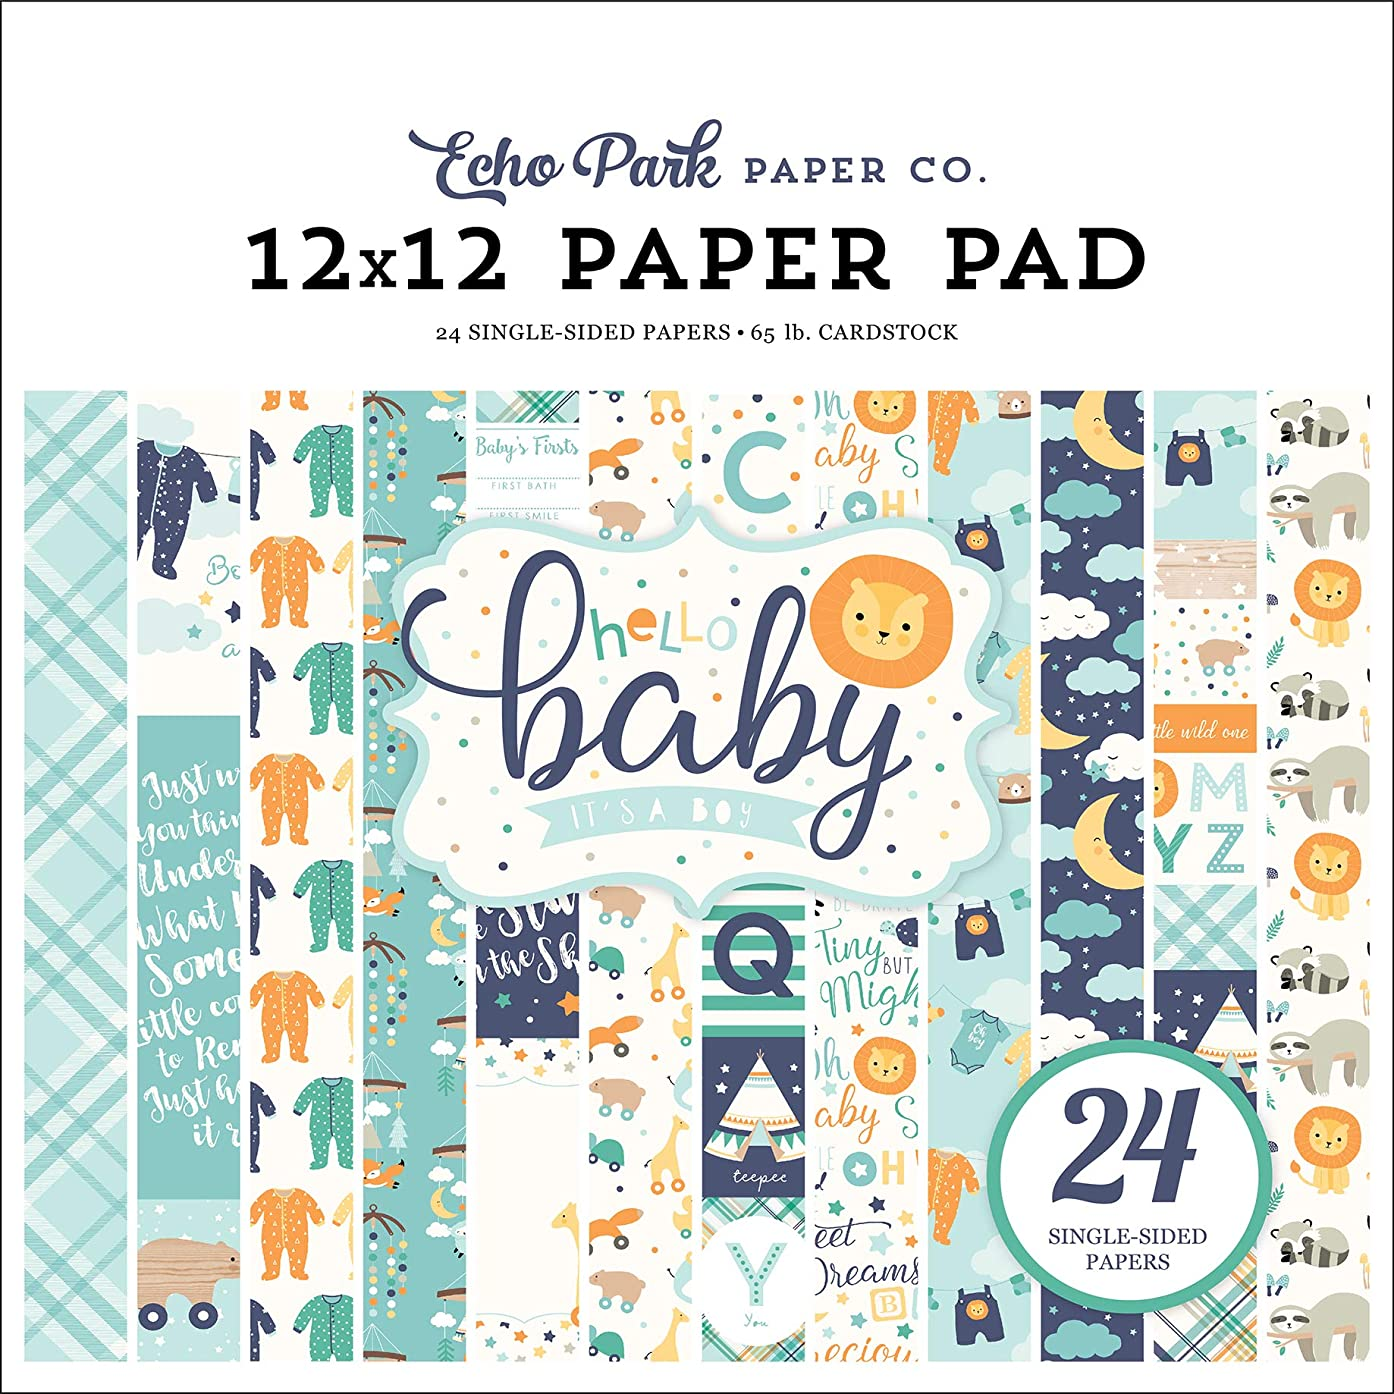 Echo Park Paper Company Hello Baby Boy 12x12 Pad Paper Navy, Yellow, Teal, Orange